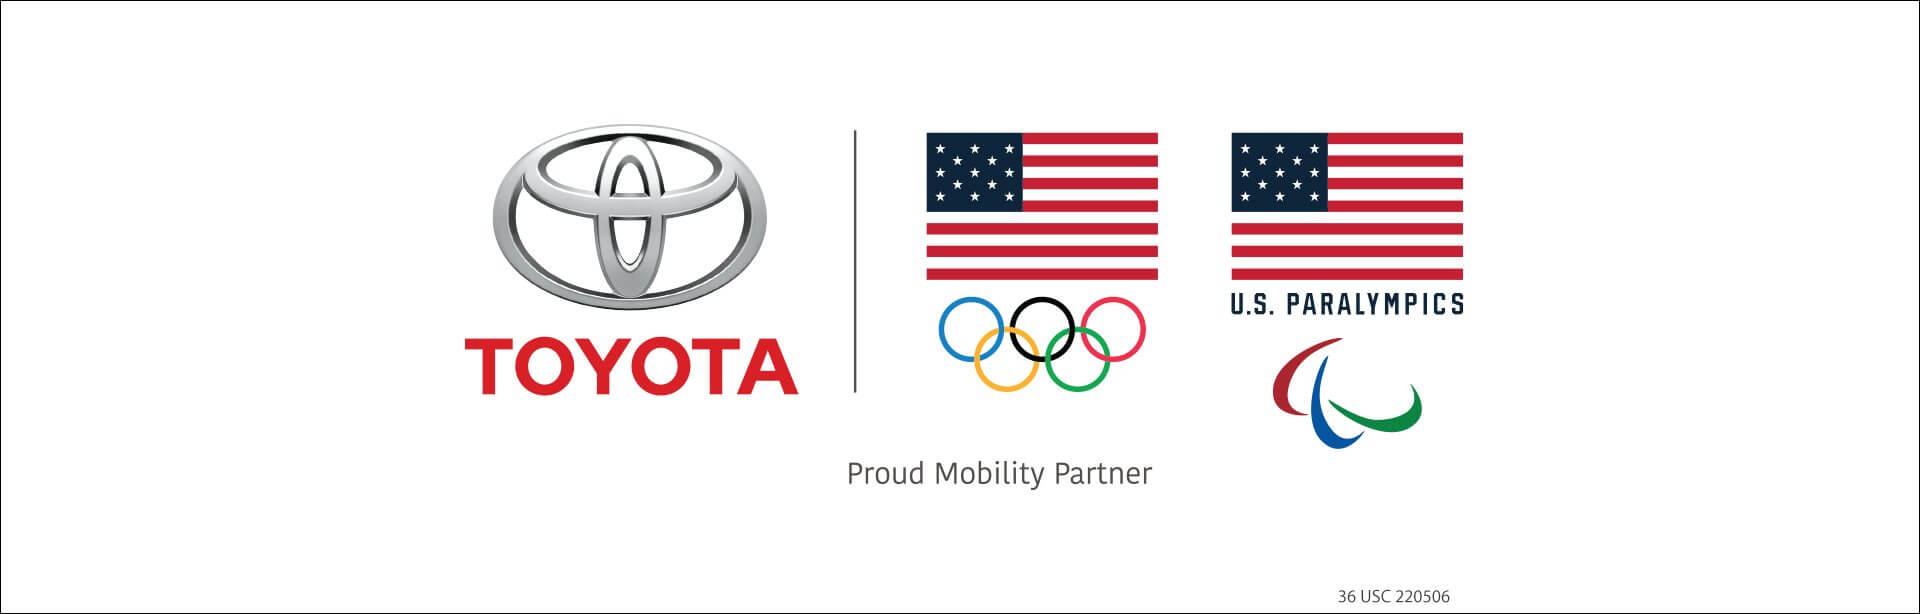 Toyota Proud Mobility Partner